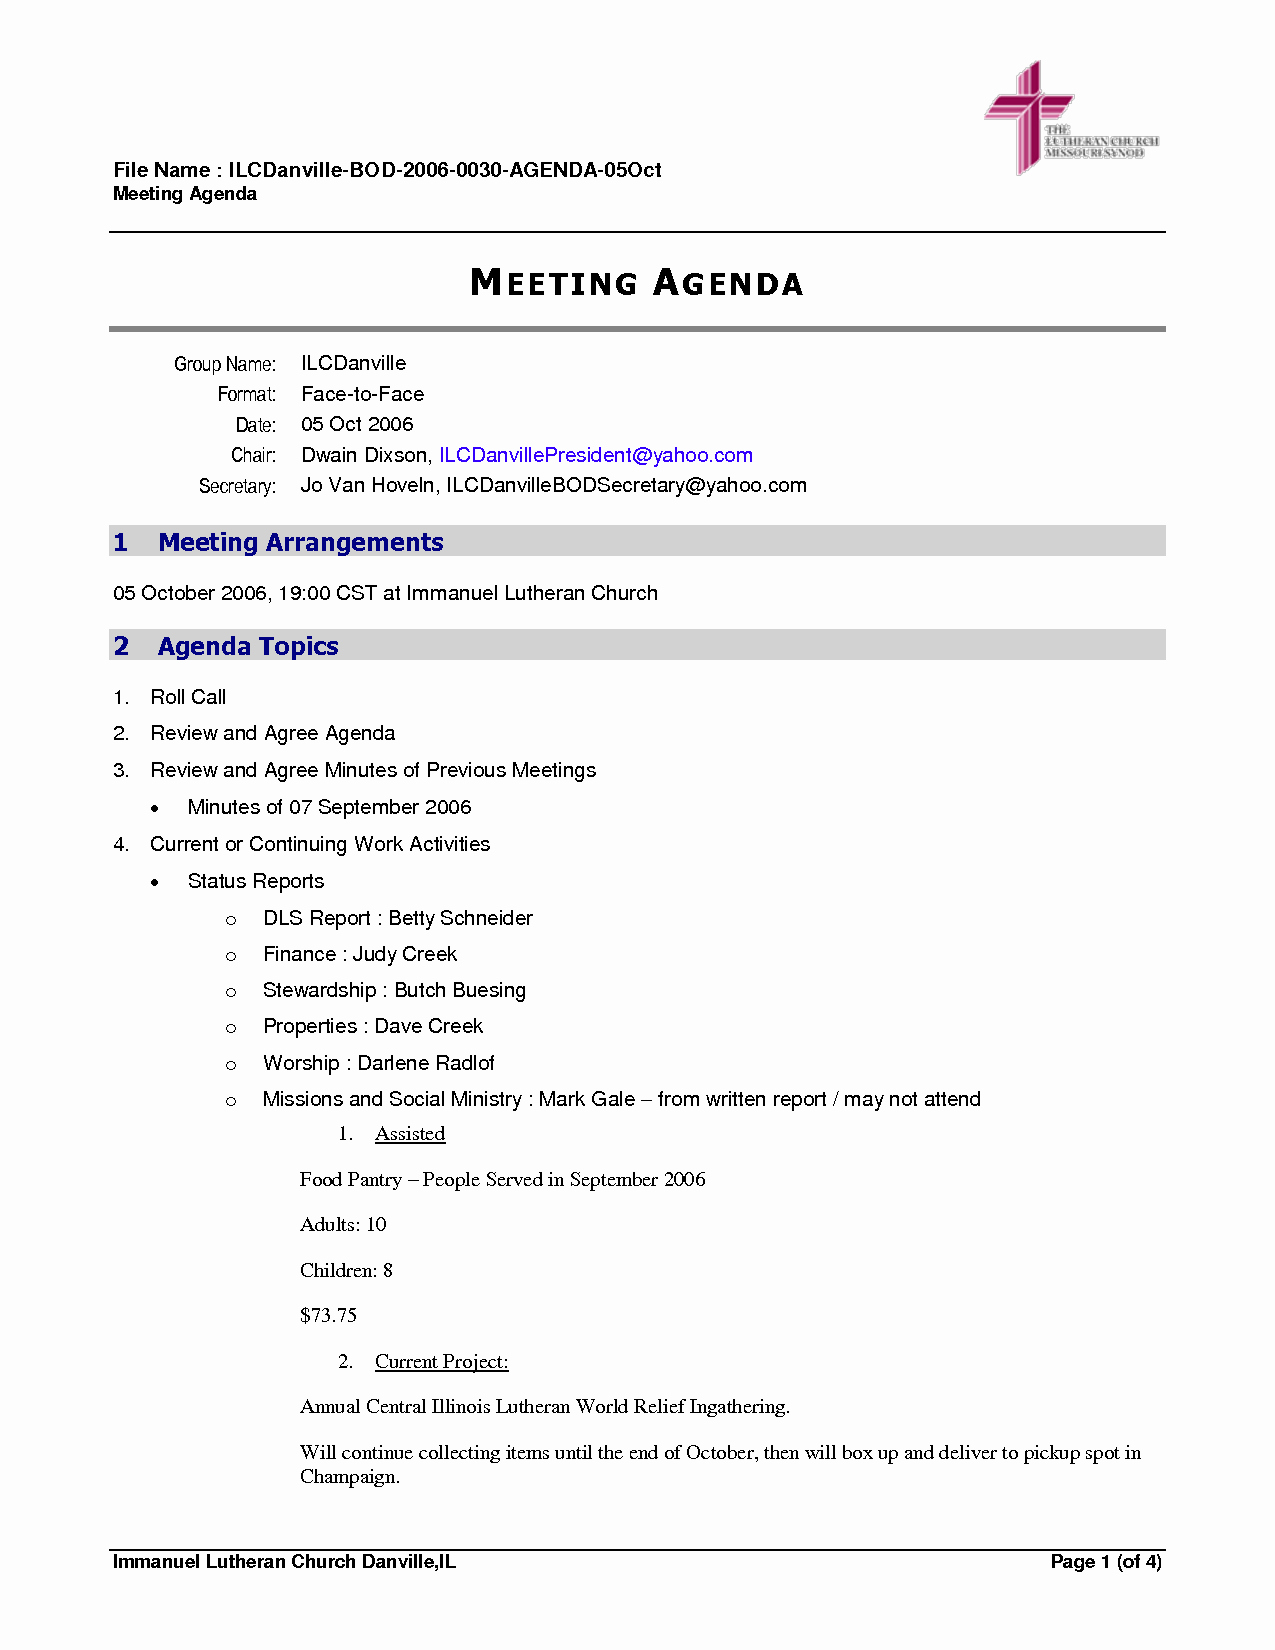 Staff Meeting Minutes Template Doc Inspirational Brilliant Ideas Agenda Word Template Agreement Sample